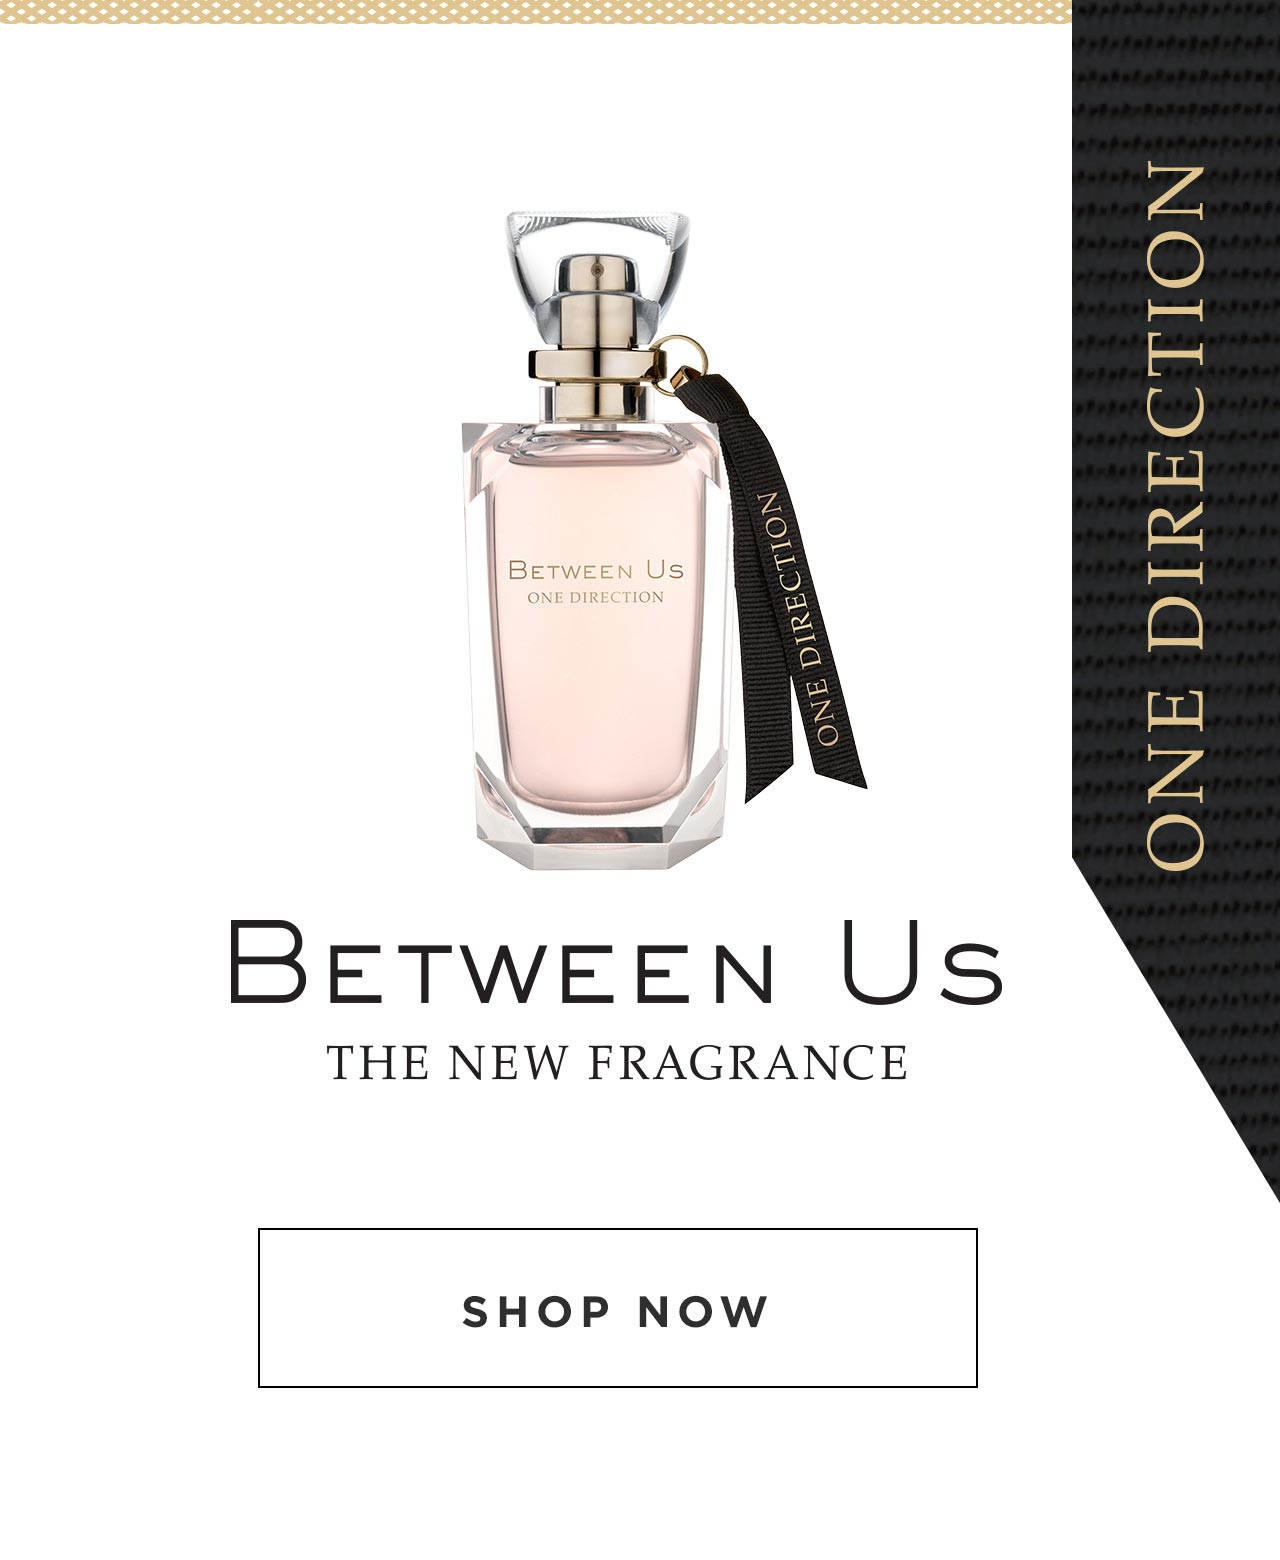 Between Us The New Fragrance